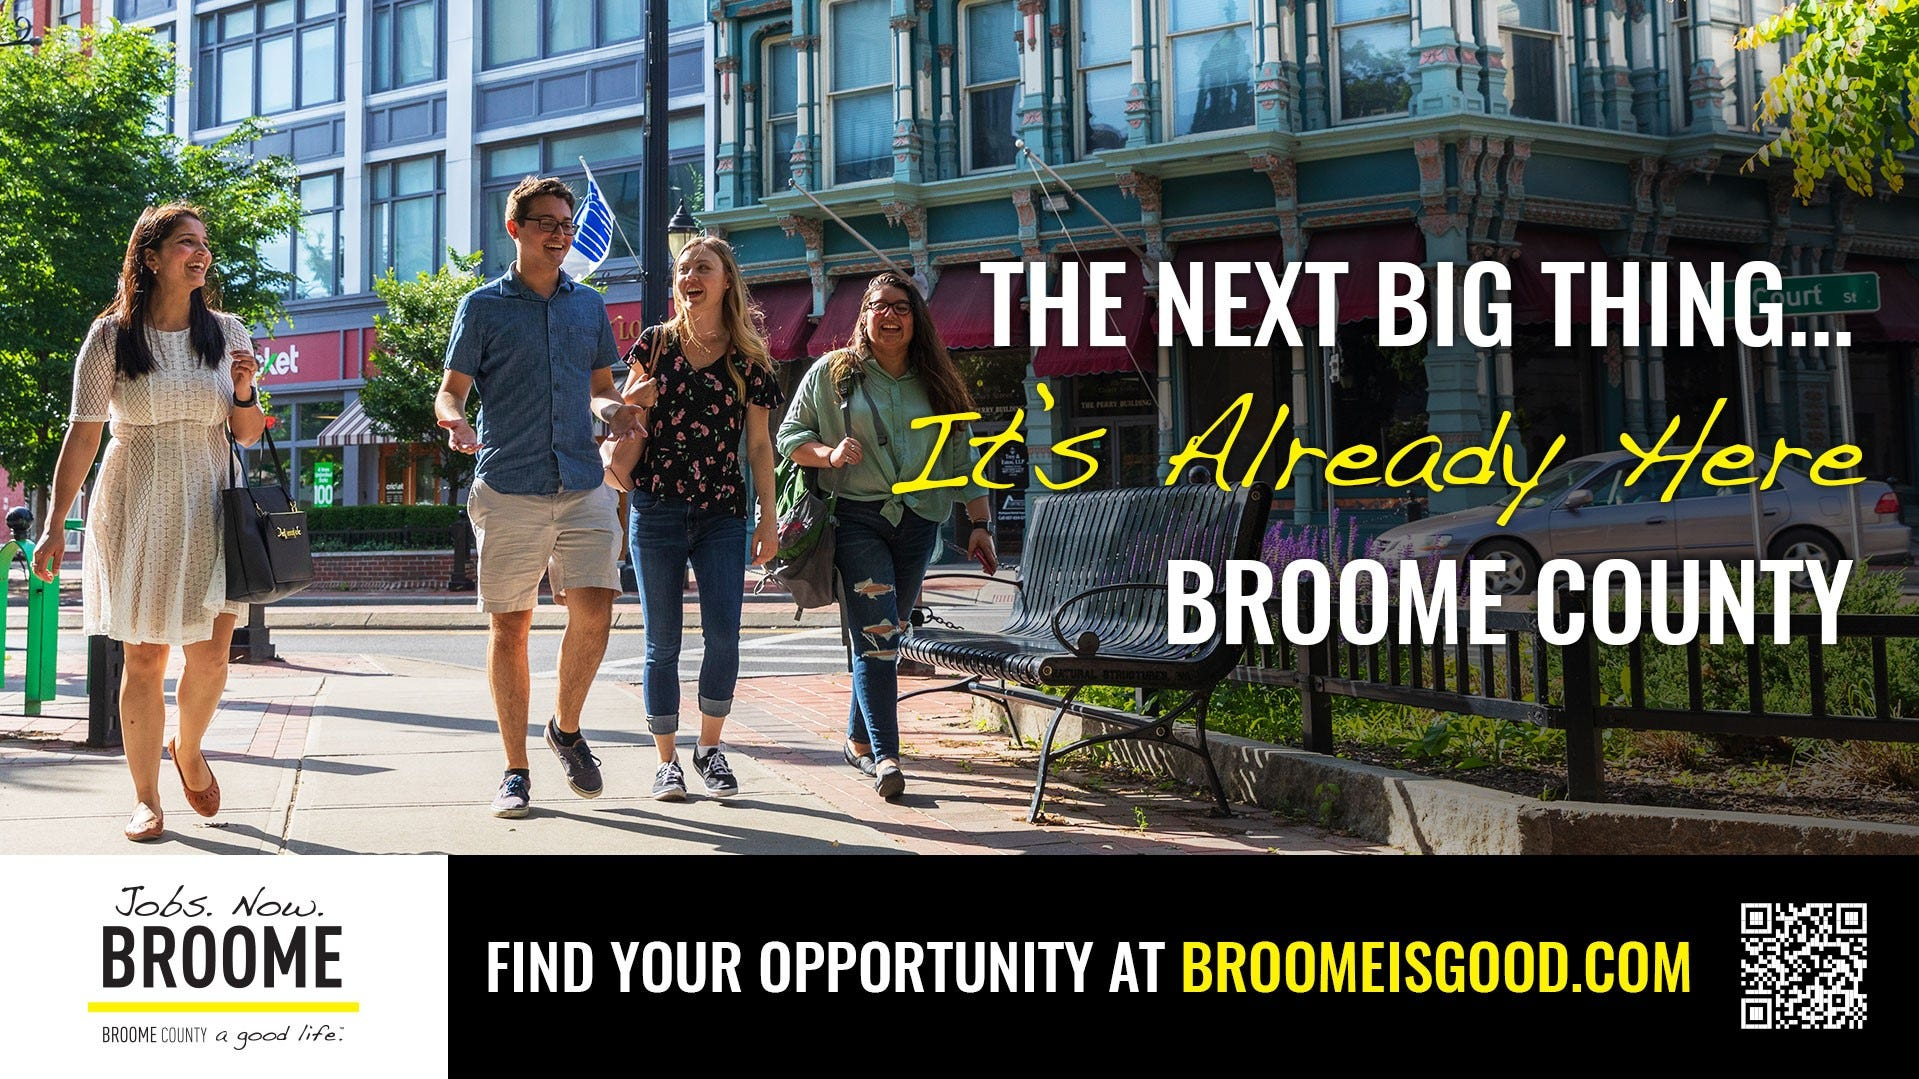 Back to School for Future Broome Workforce!